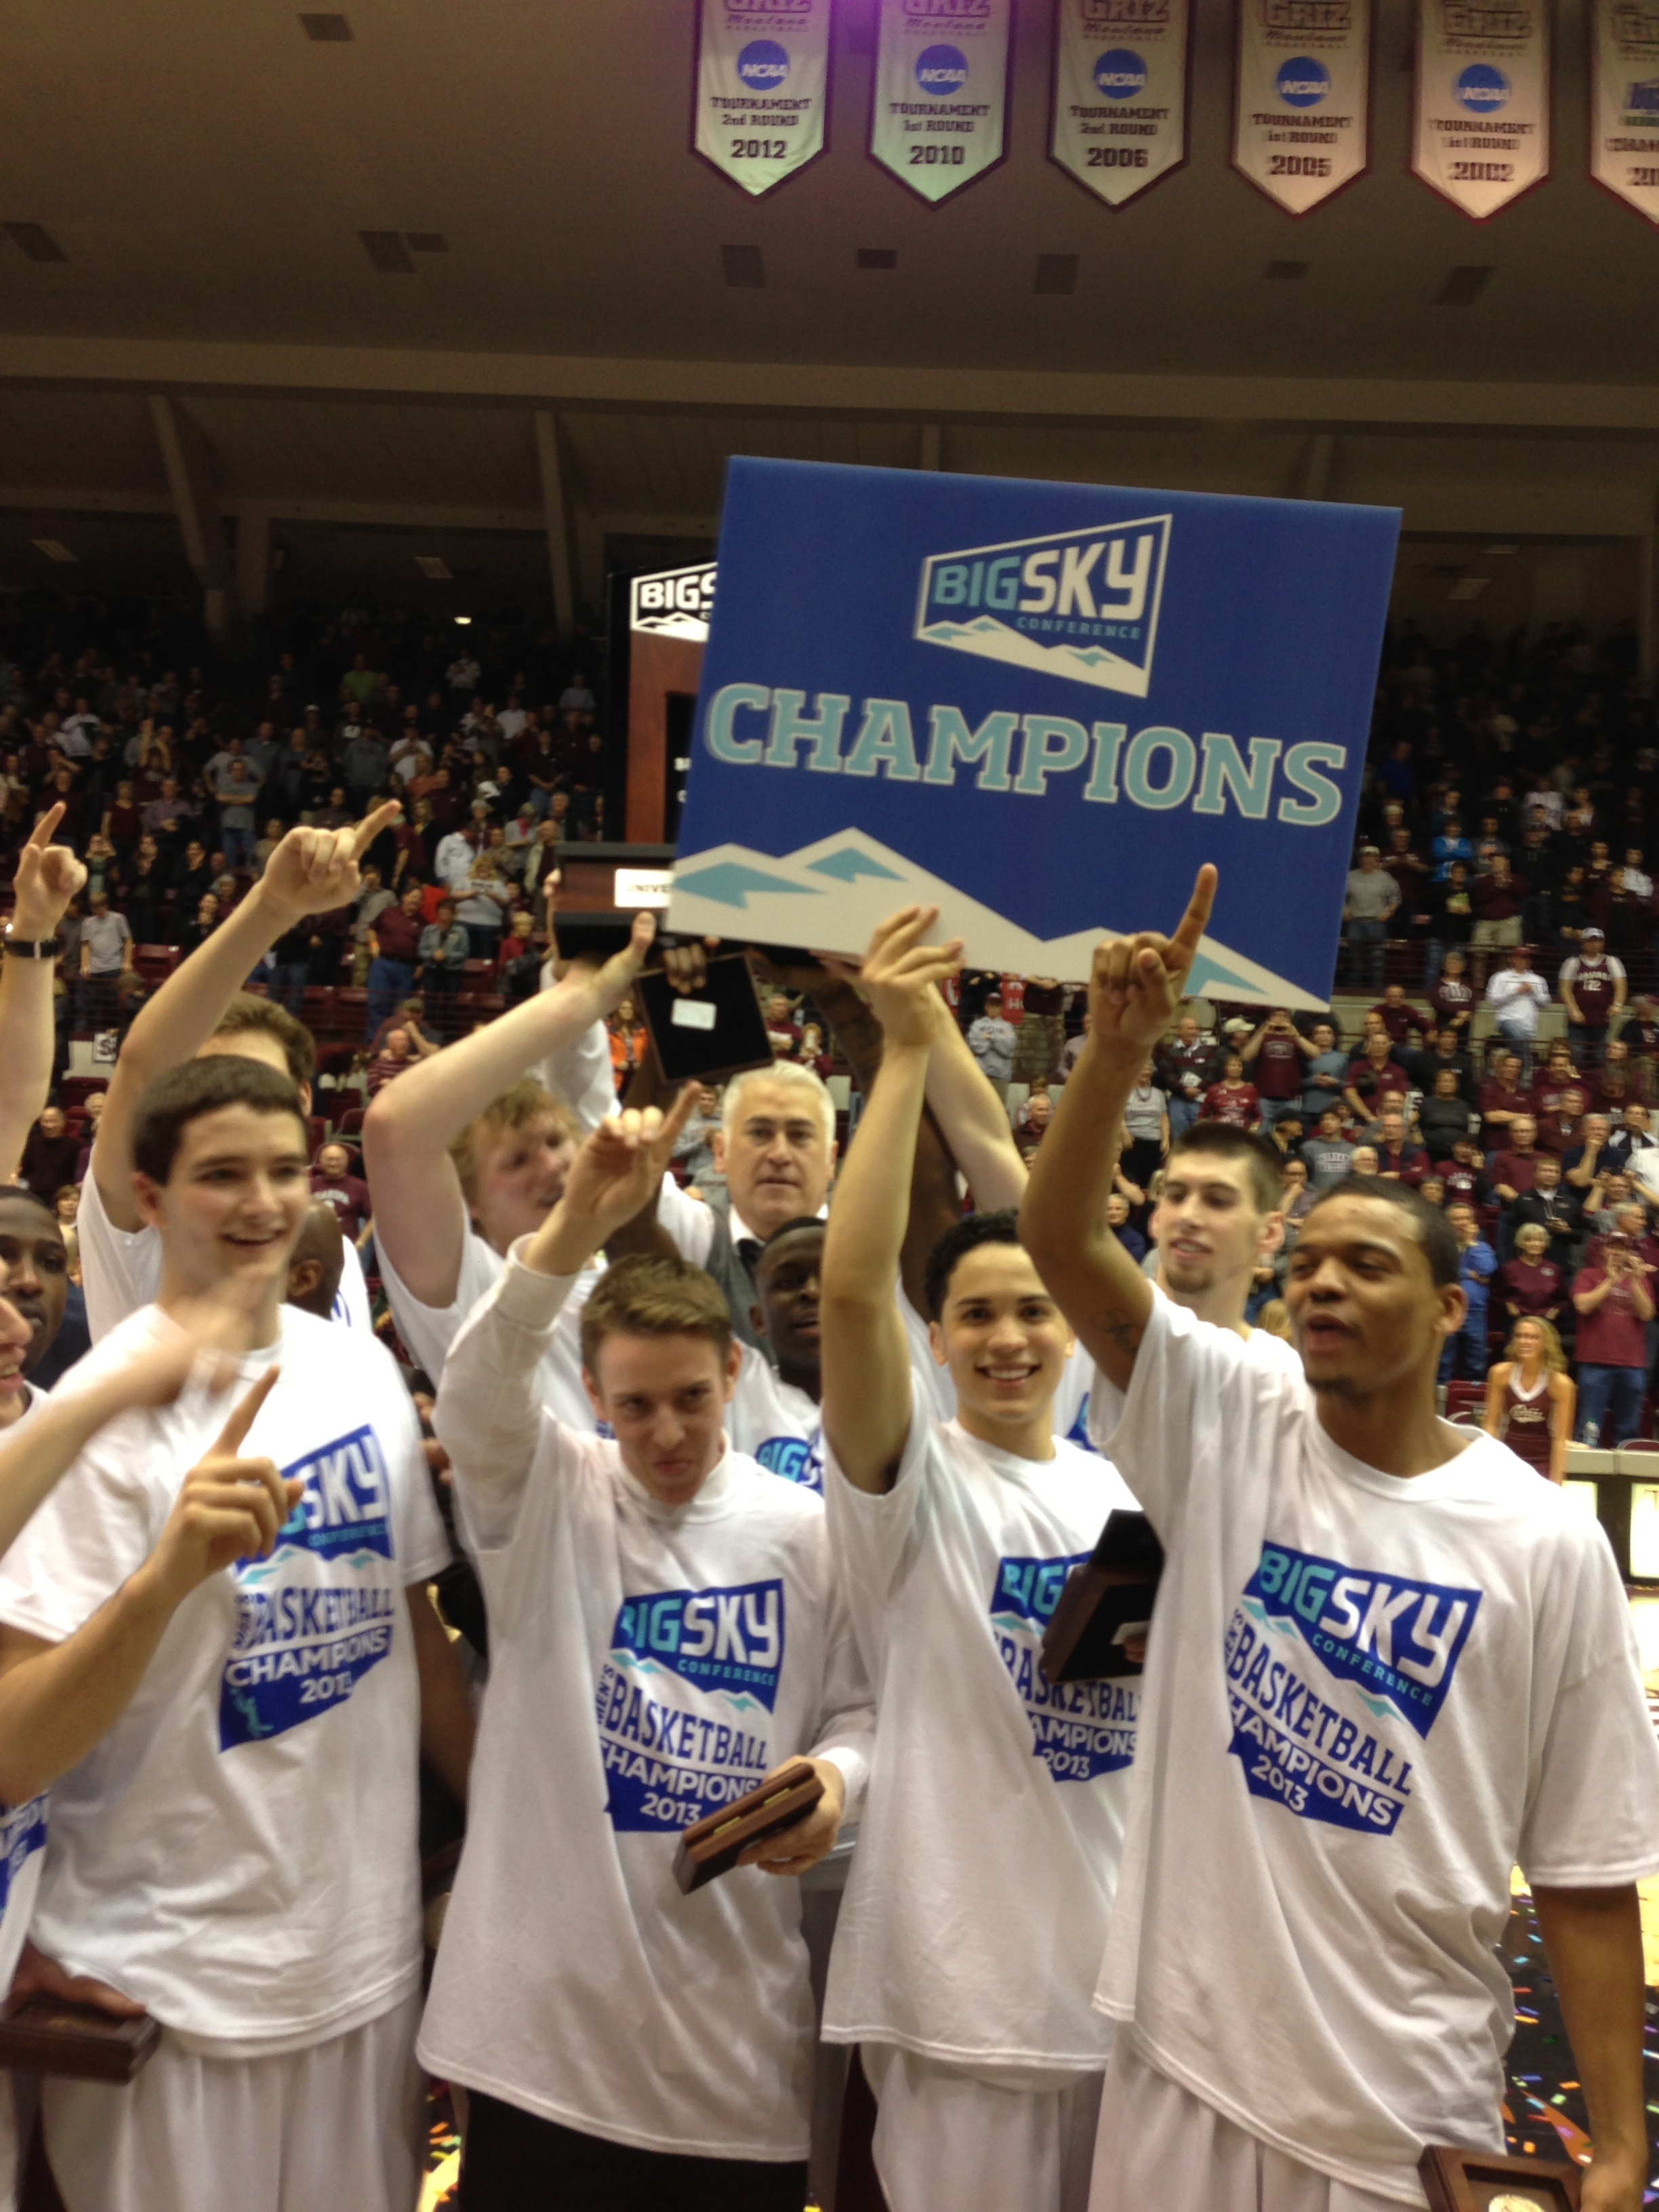 Members of the Griz basketball team celebrating after the game.